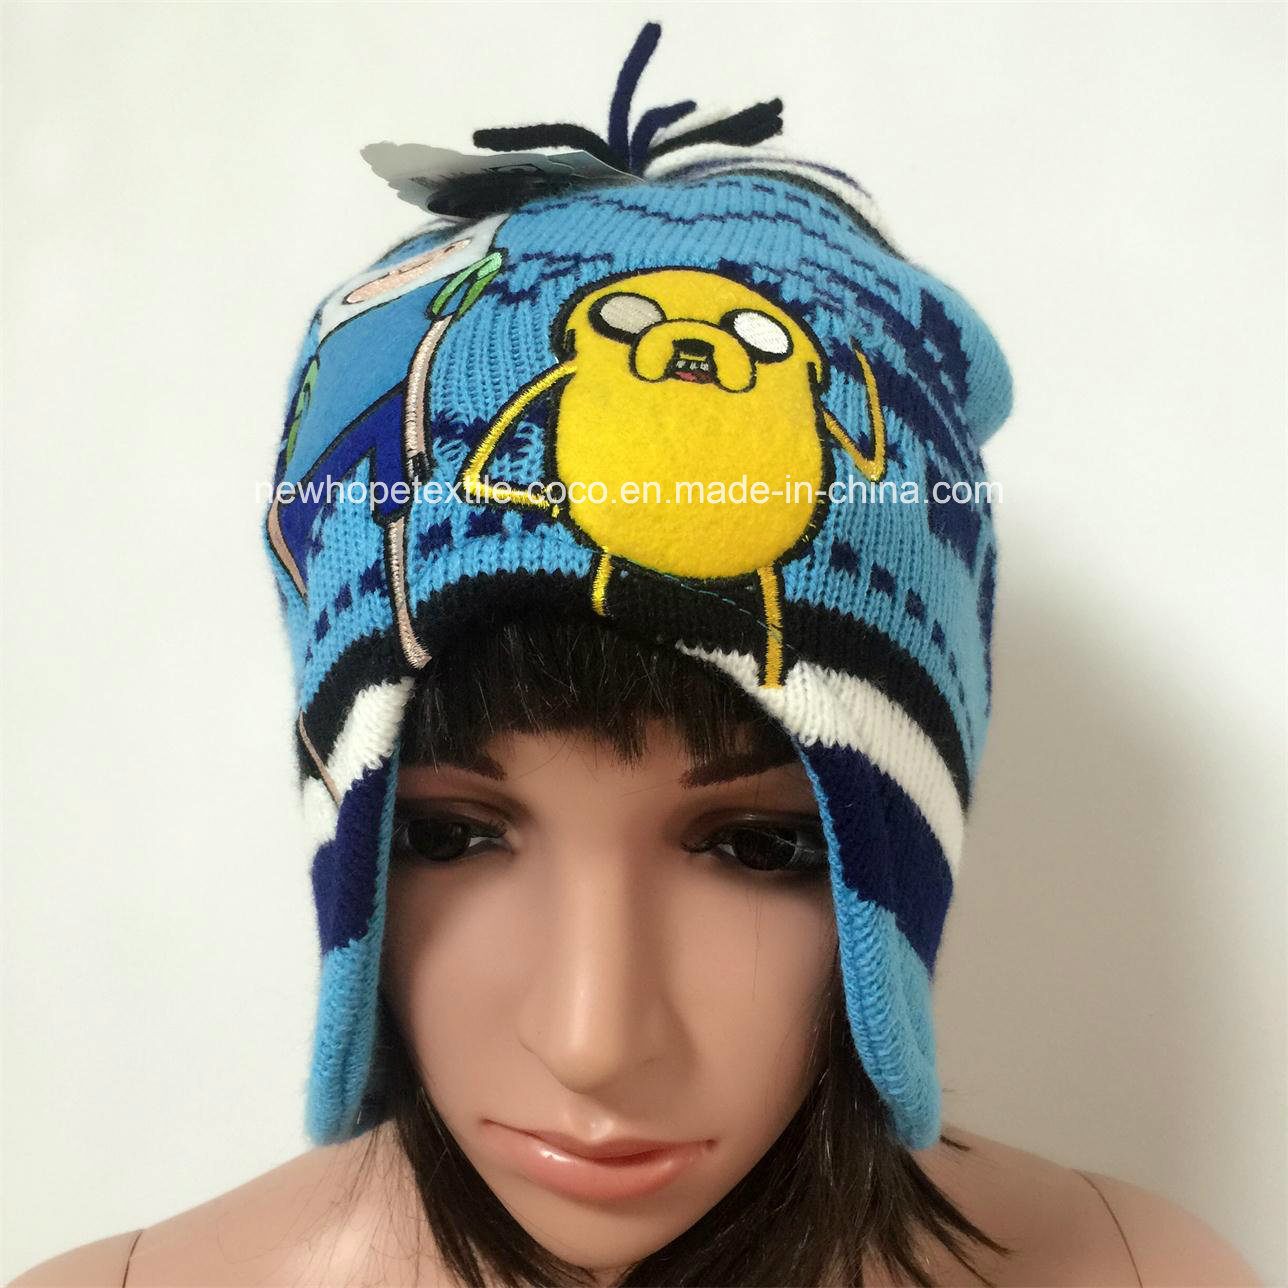 3bdb9cede26 China Fashion Beanie for Children with Ears Bowknot Embroidery Printing Strings  - China Beanie Hat